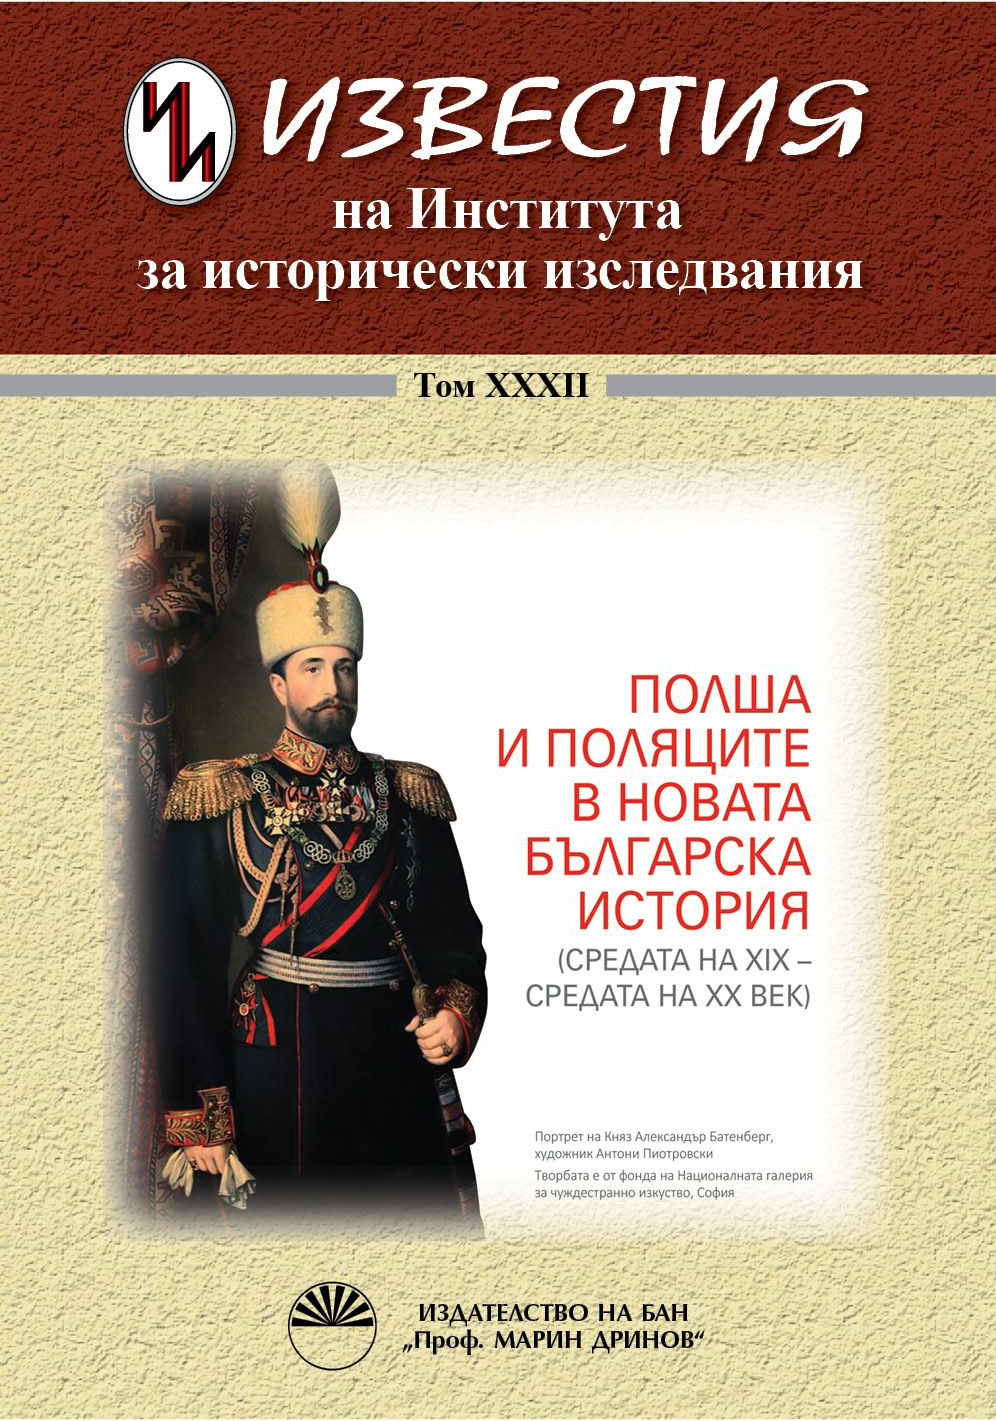 Travel Notes of Michal Czajka-Czajkowski as a Document for the Population in Eastern Macedonia Cover Image